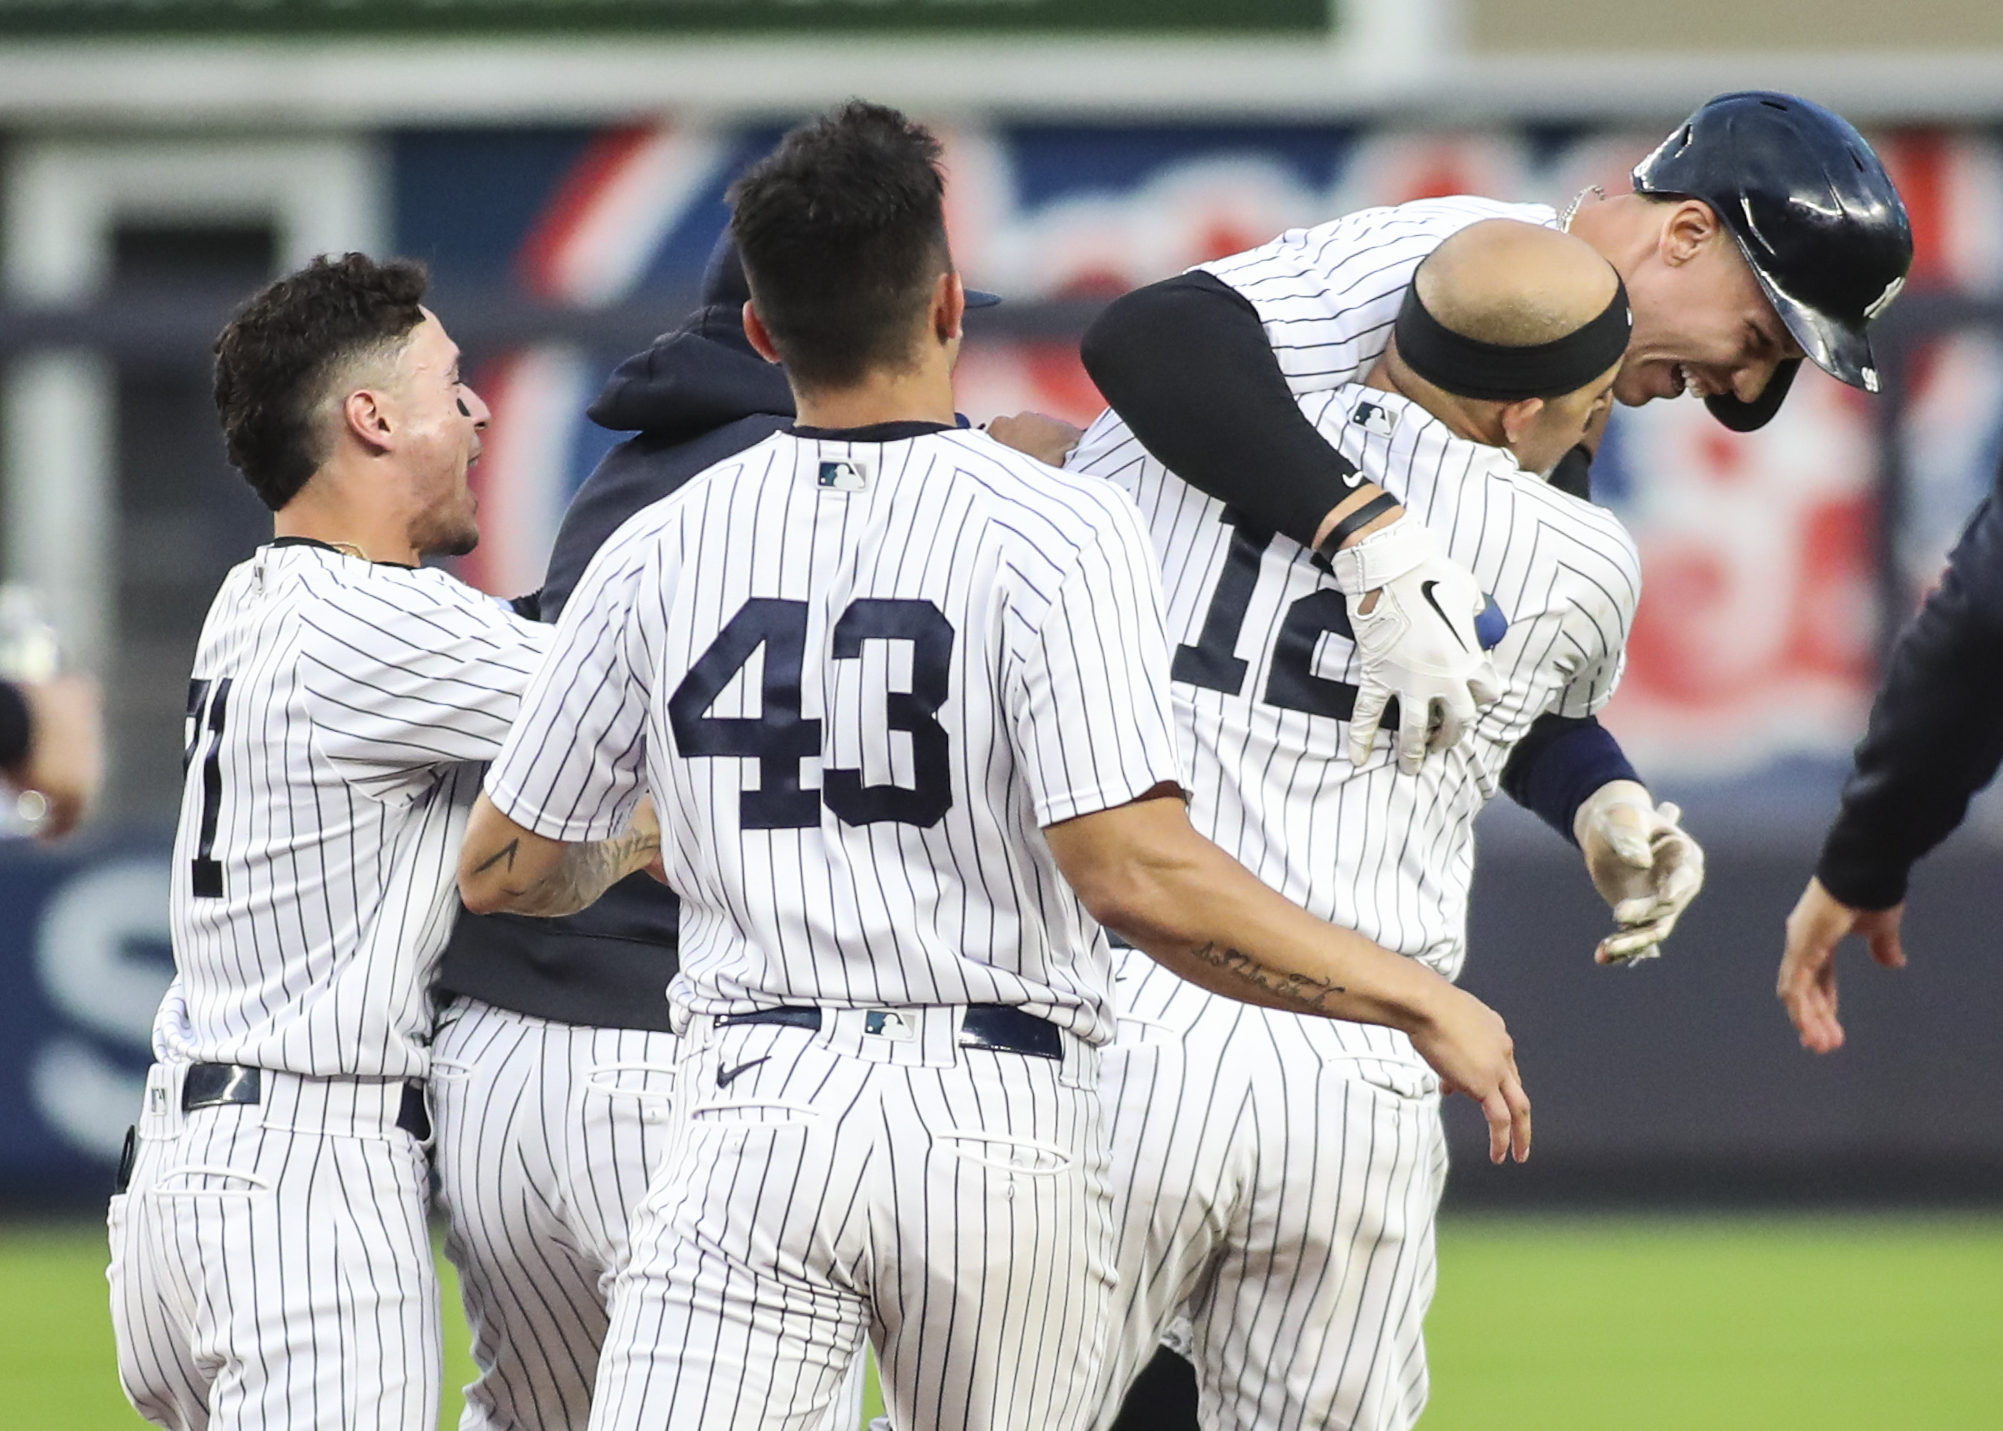 Oct 3, 2021; Bronx, New York, USA;  The New York Yankees mob right fielder Aaron Judge (99) after his game winning RBI single to defeat the Tampa Bay Rays 1-0 and clinch a wildcard playoff spot at Yankee Stadium. Mandatory Credit: Wendell Cruz-USA TODAY Sports